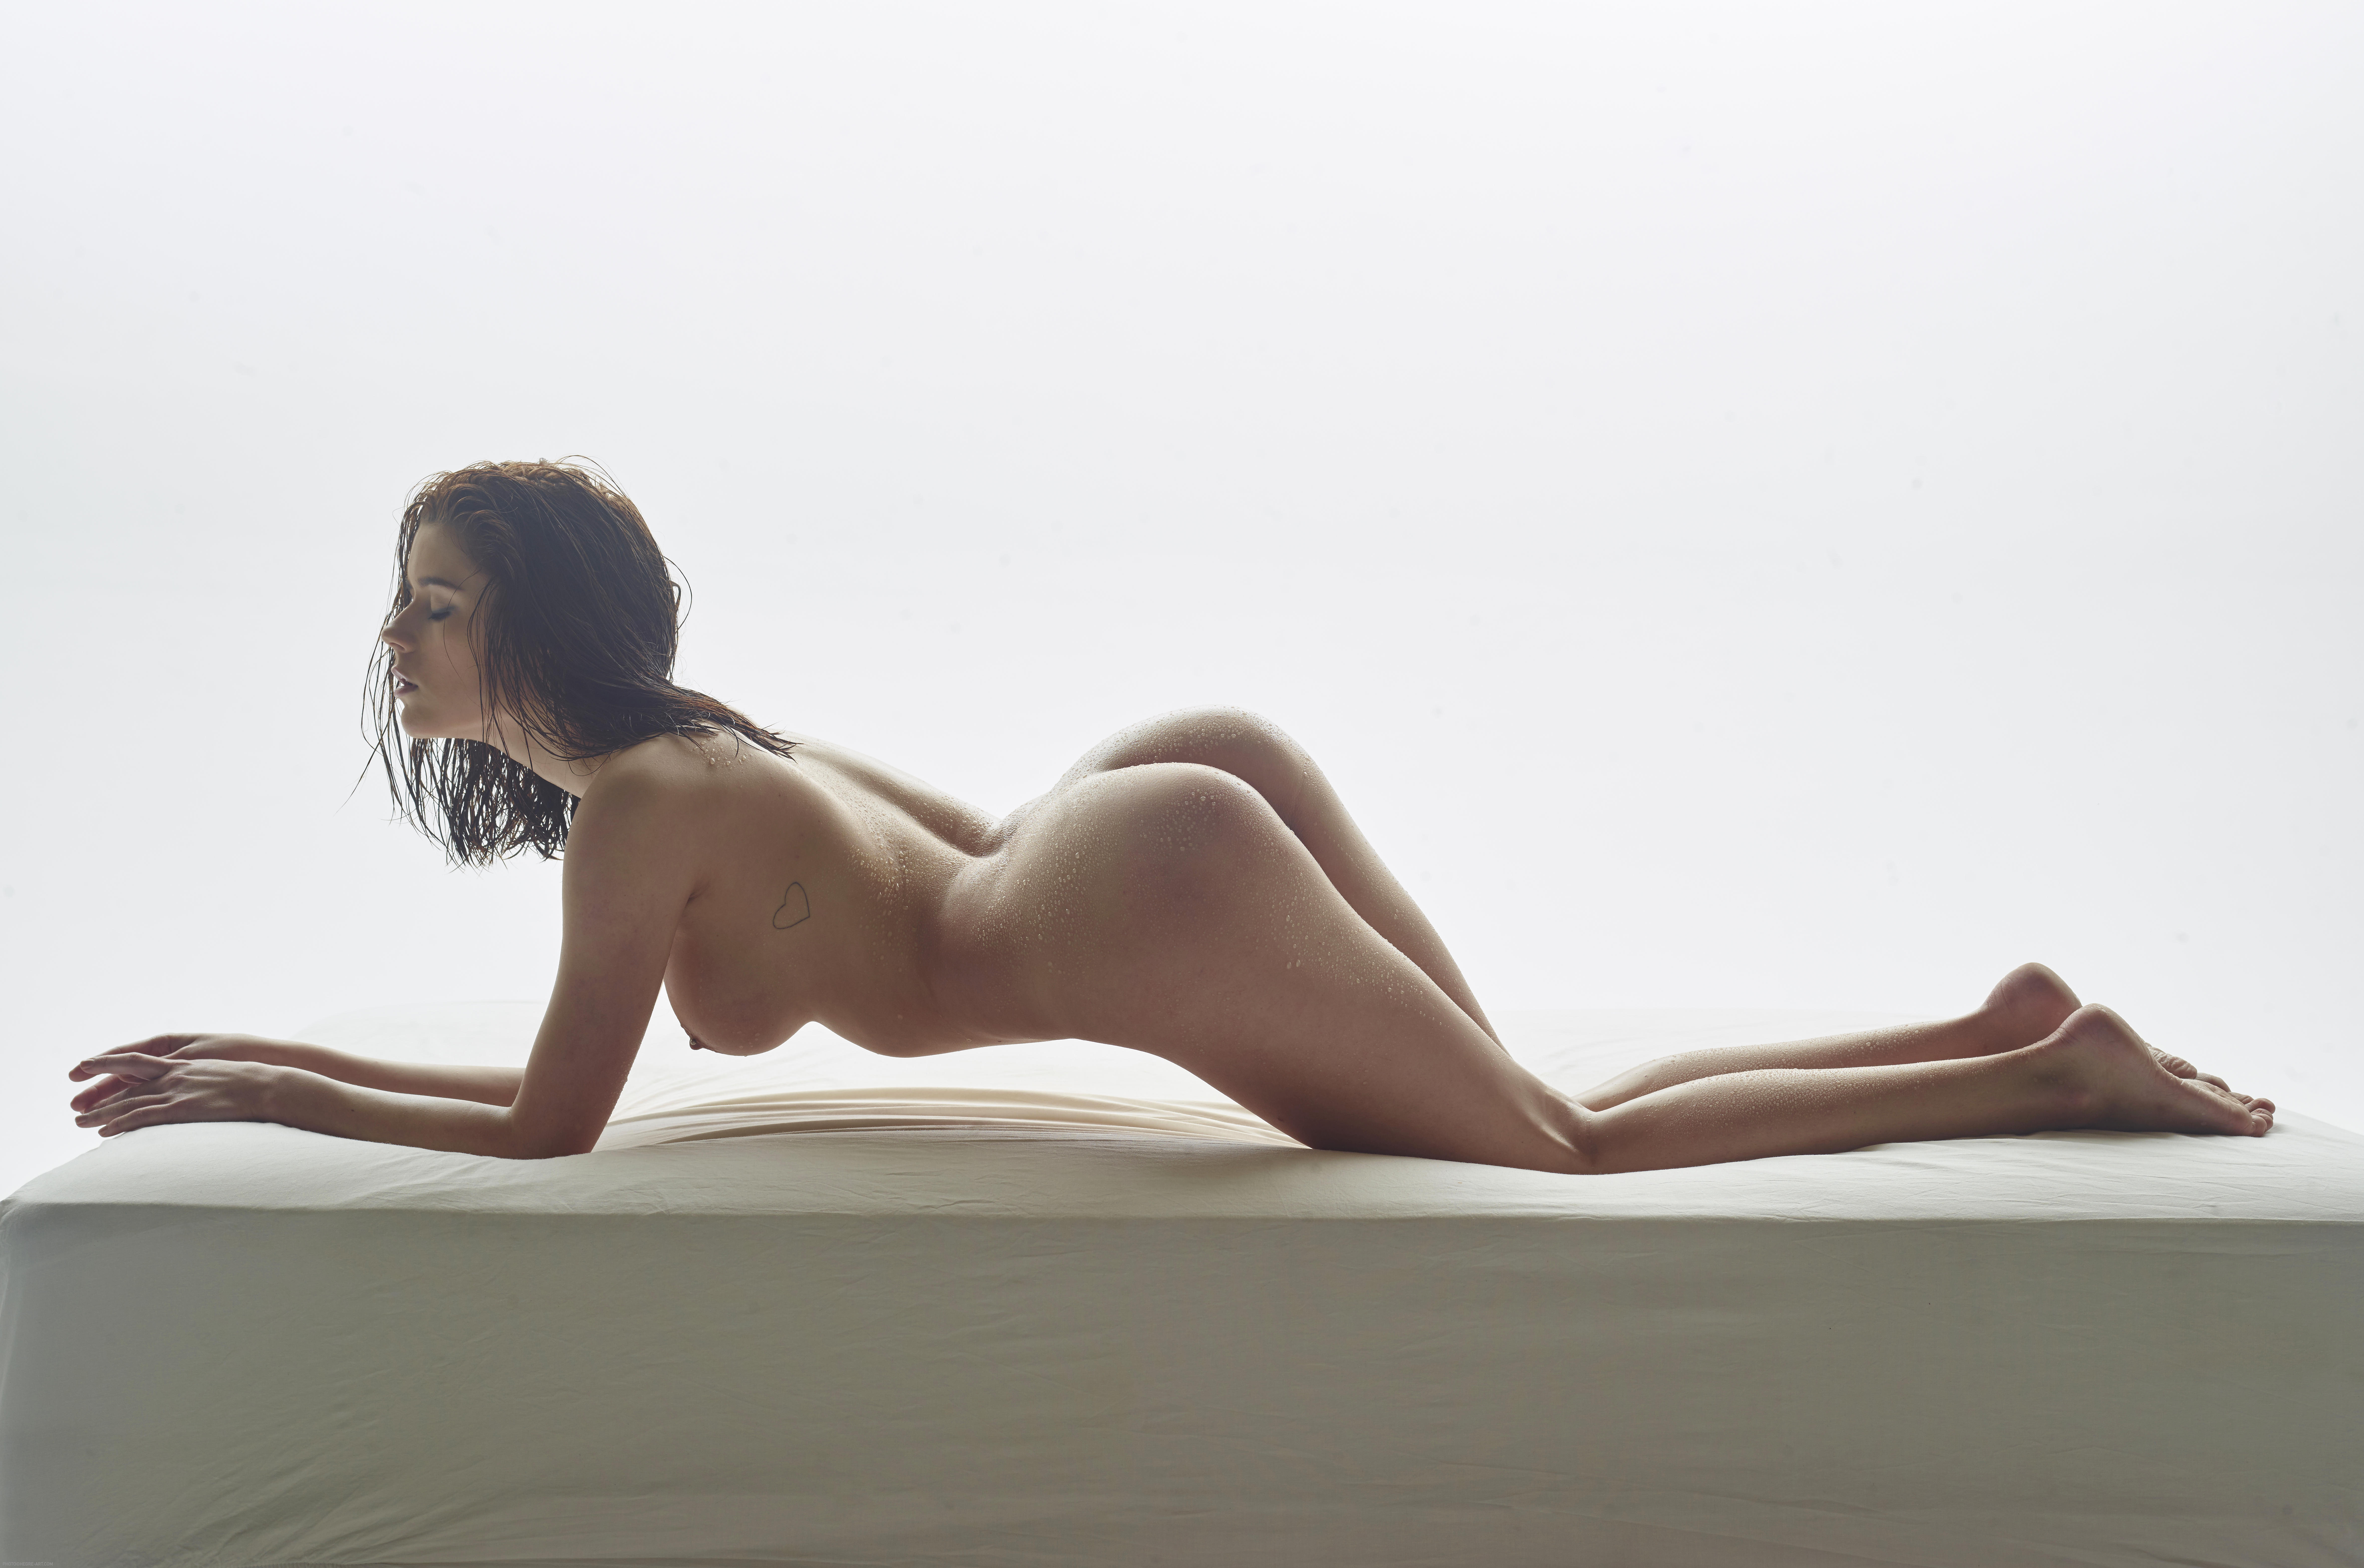 Think, that Ultra high resolution indian nude images phrase